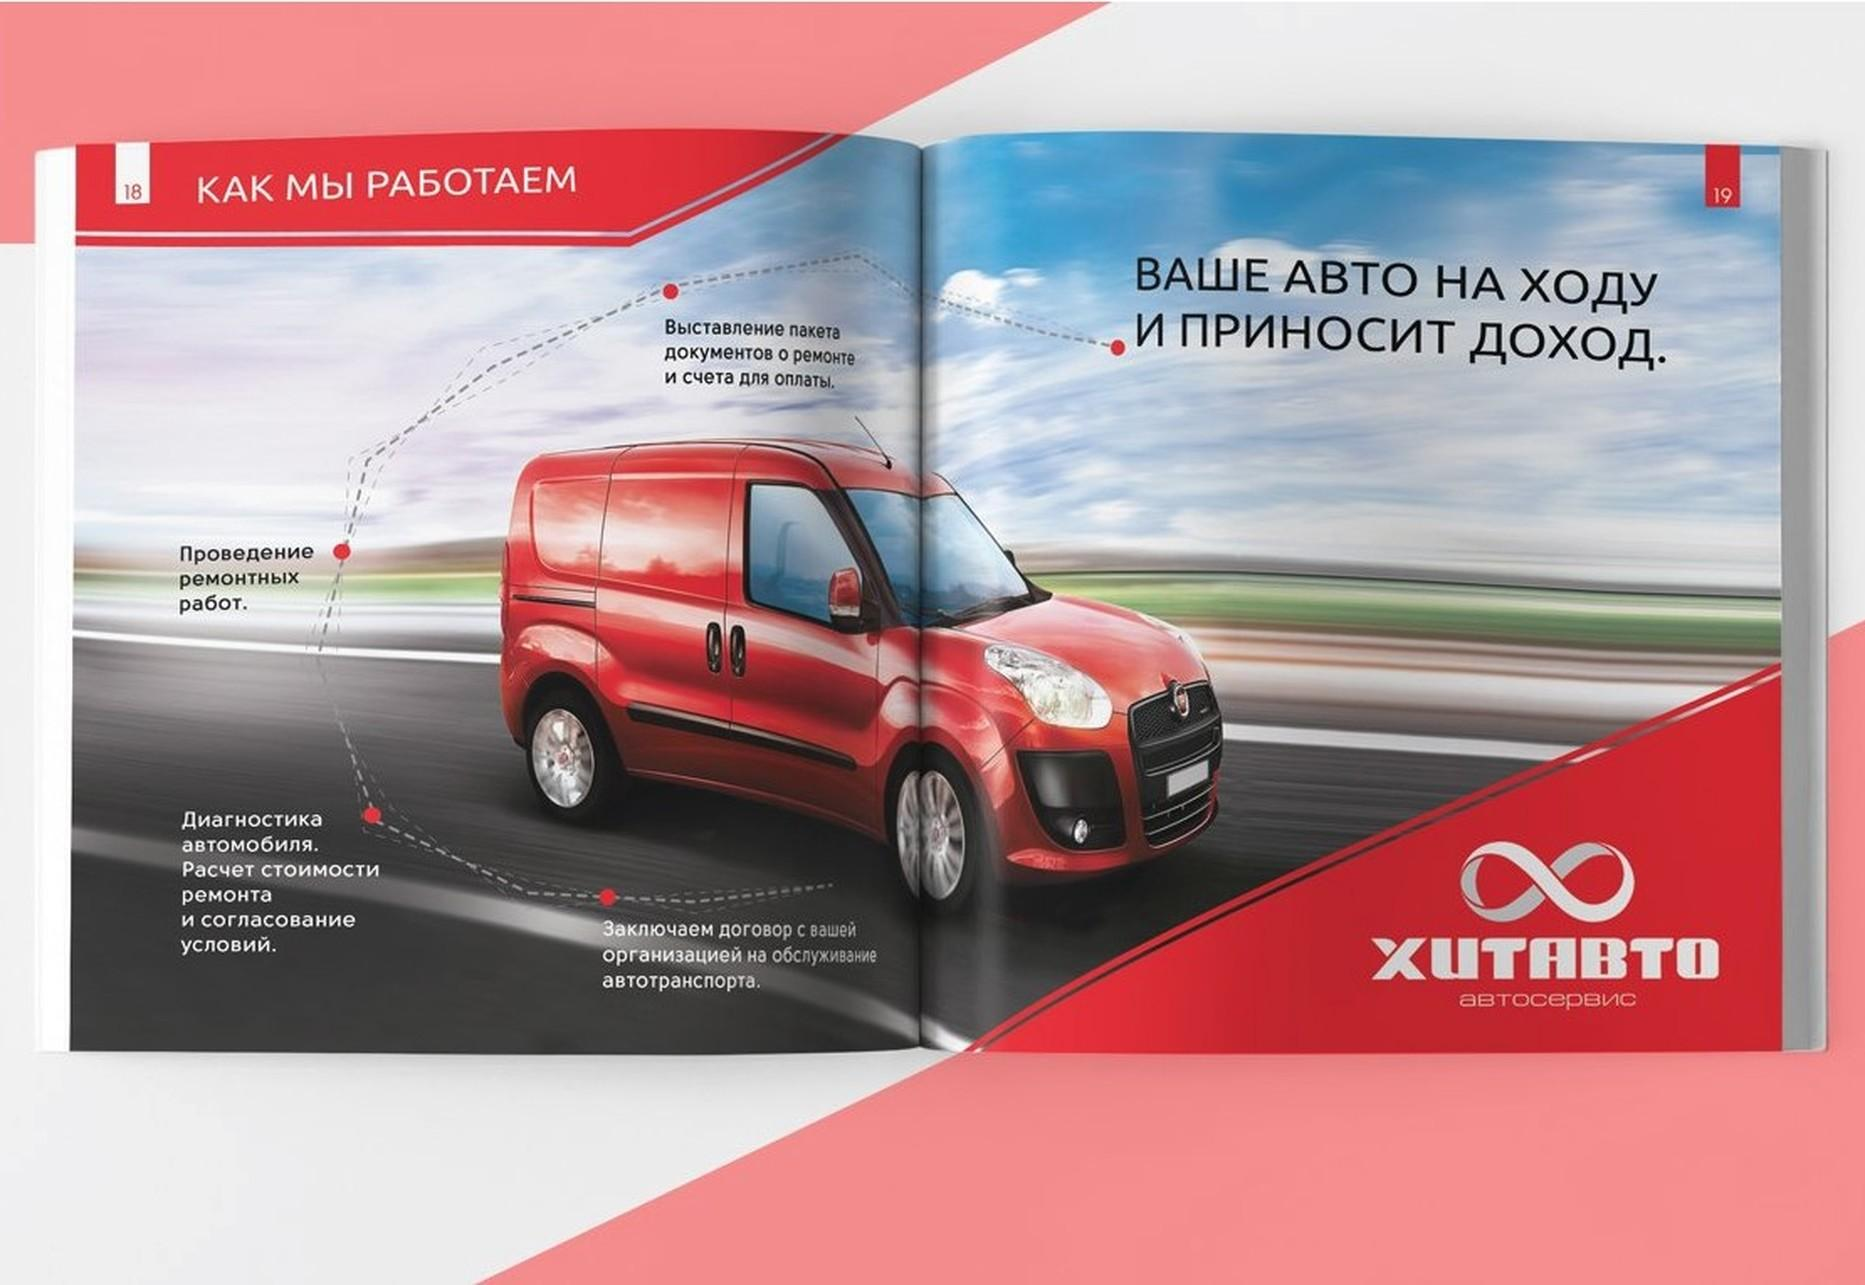 Case: Marketing Kit Development for HitAvto Auto Service — Rubarb - Image - 6